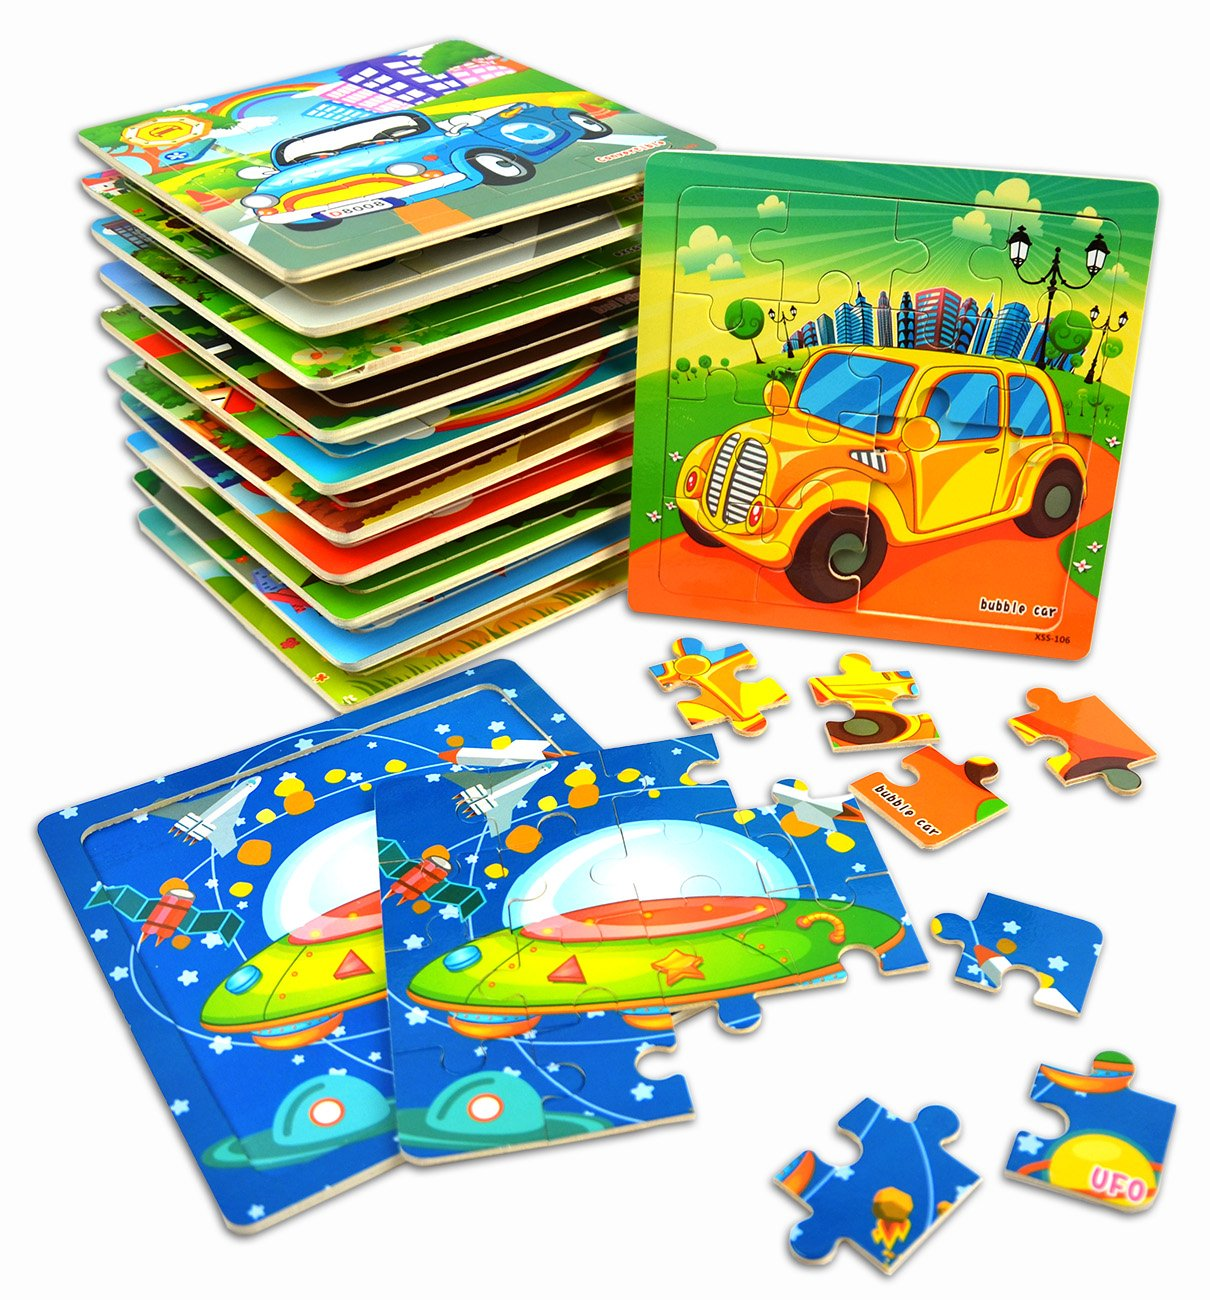 Vileafy Kids Jigsaw Puzzles Party Favors Toys for Boys & Girls, Wooden Puzzles, 12-Pack with Individual Storage Tray & Organza Bag, 5 3/4'' x 5 3/4'' Per Pack by Vileafy